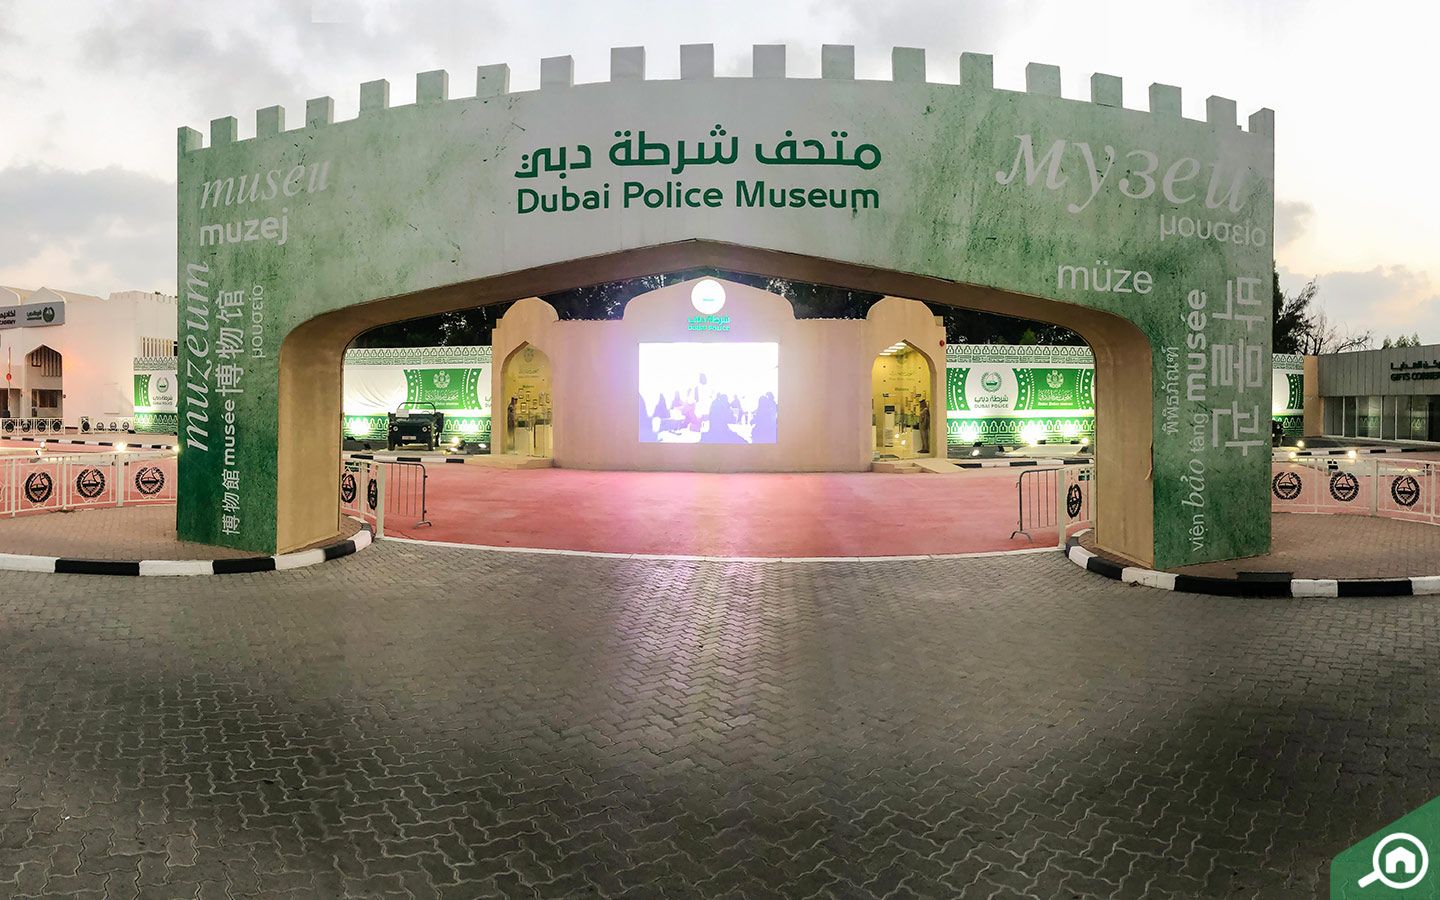 entrance to the Dubai Police Museum